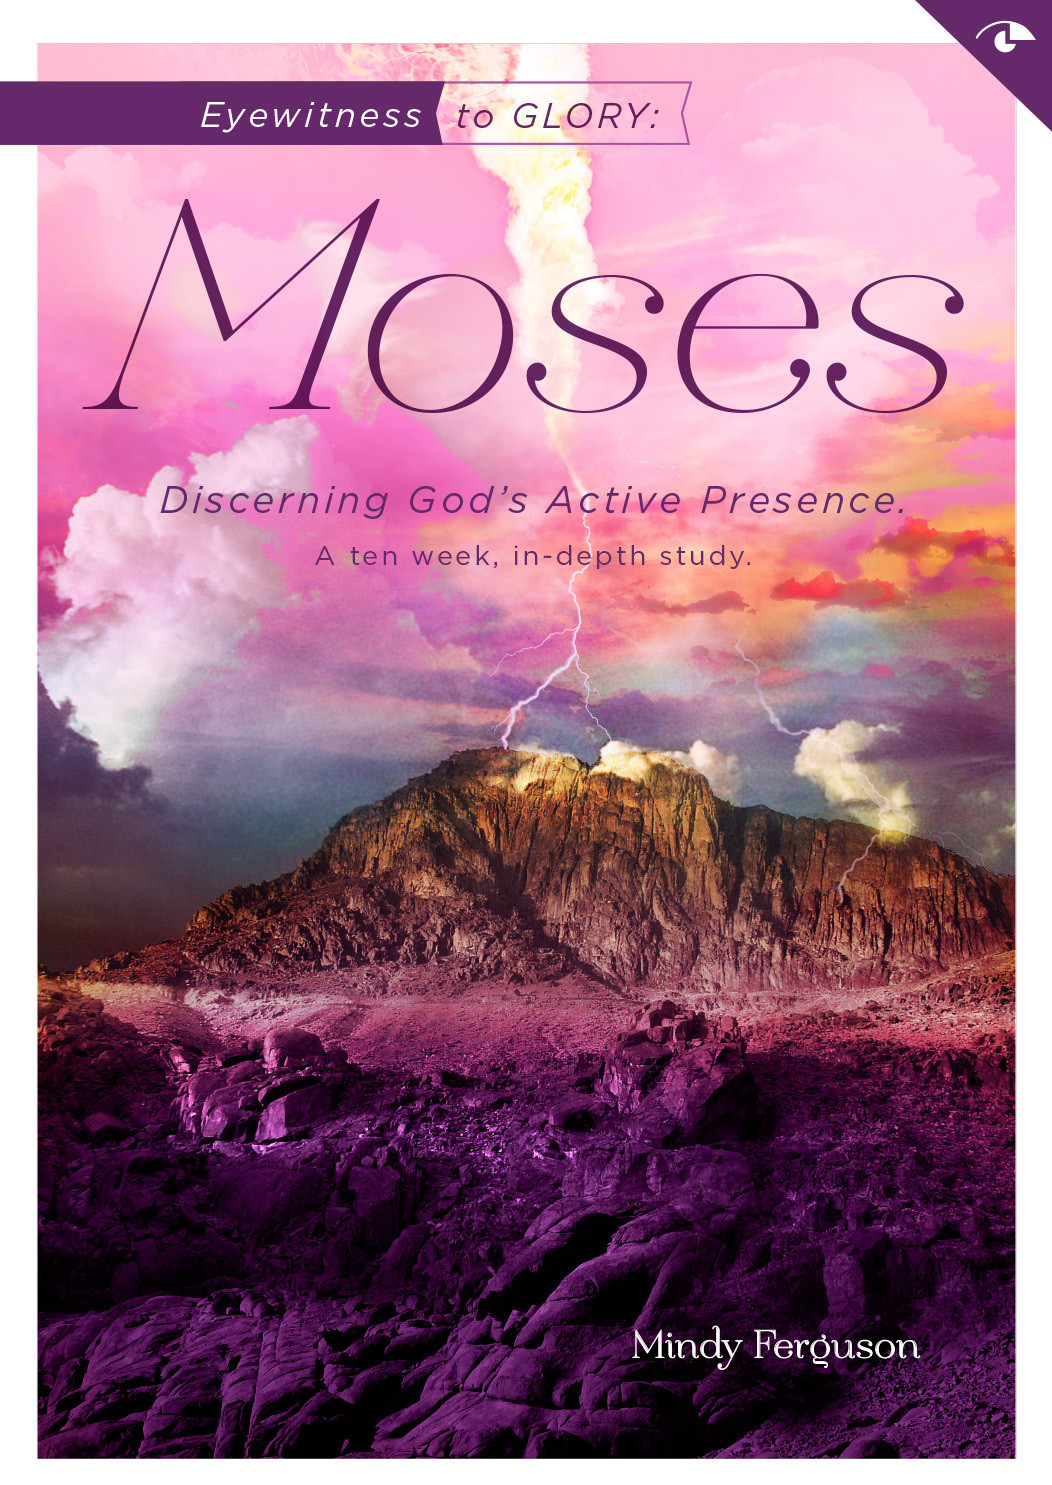 Eyewitness to Glory: Moses - Workbook